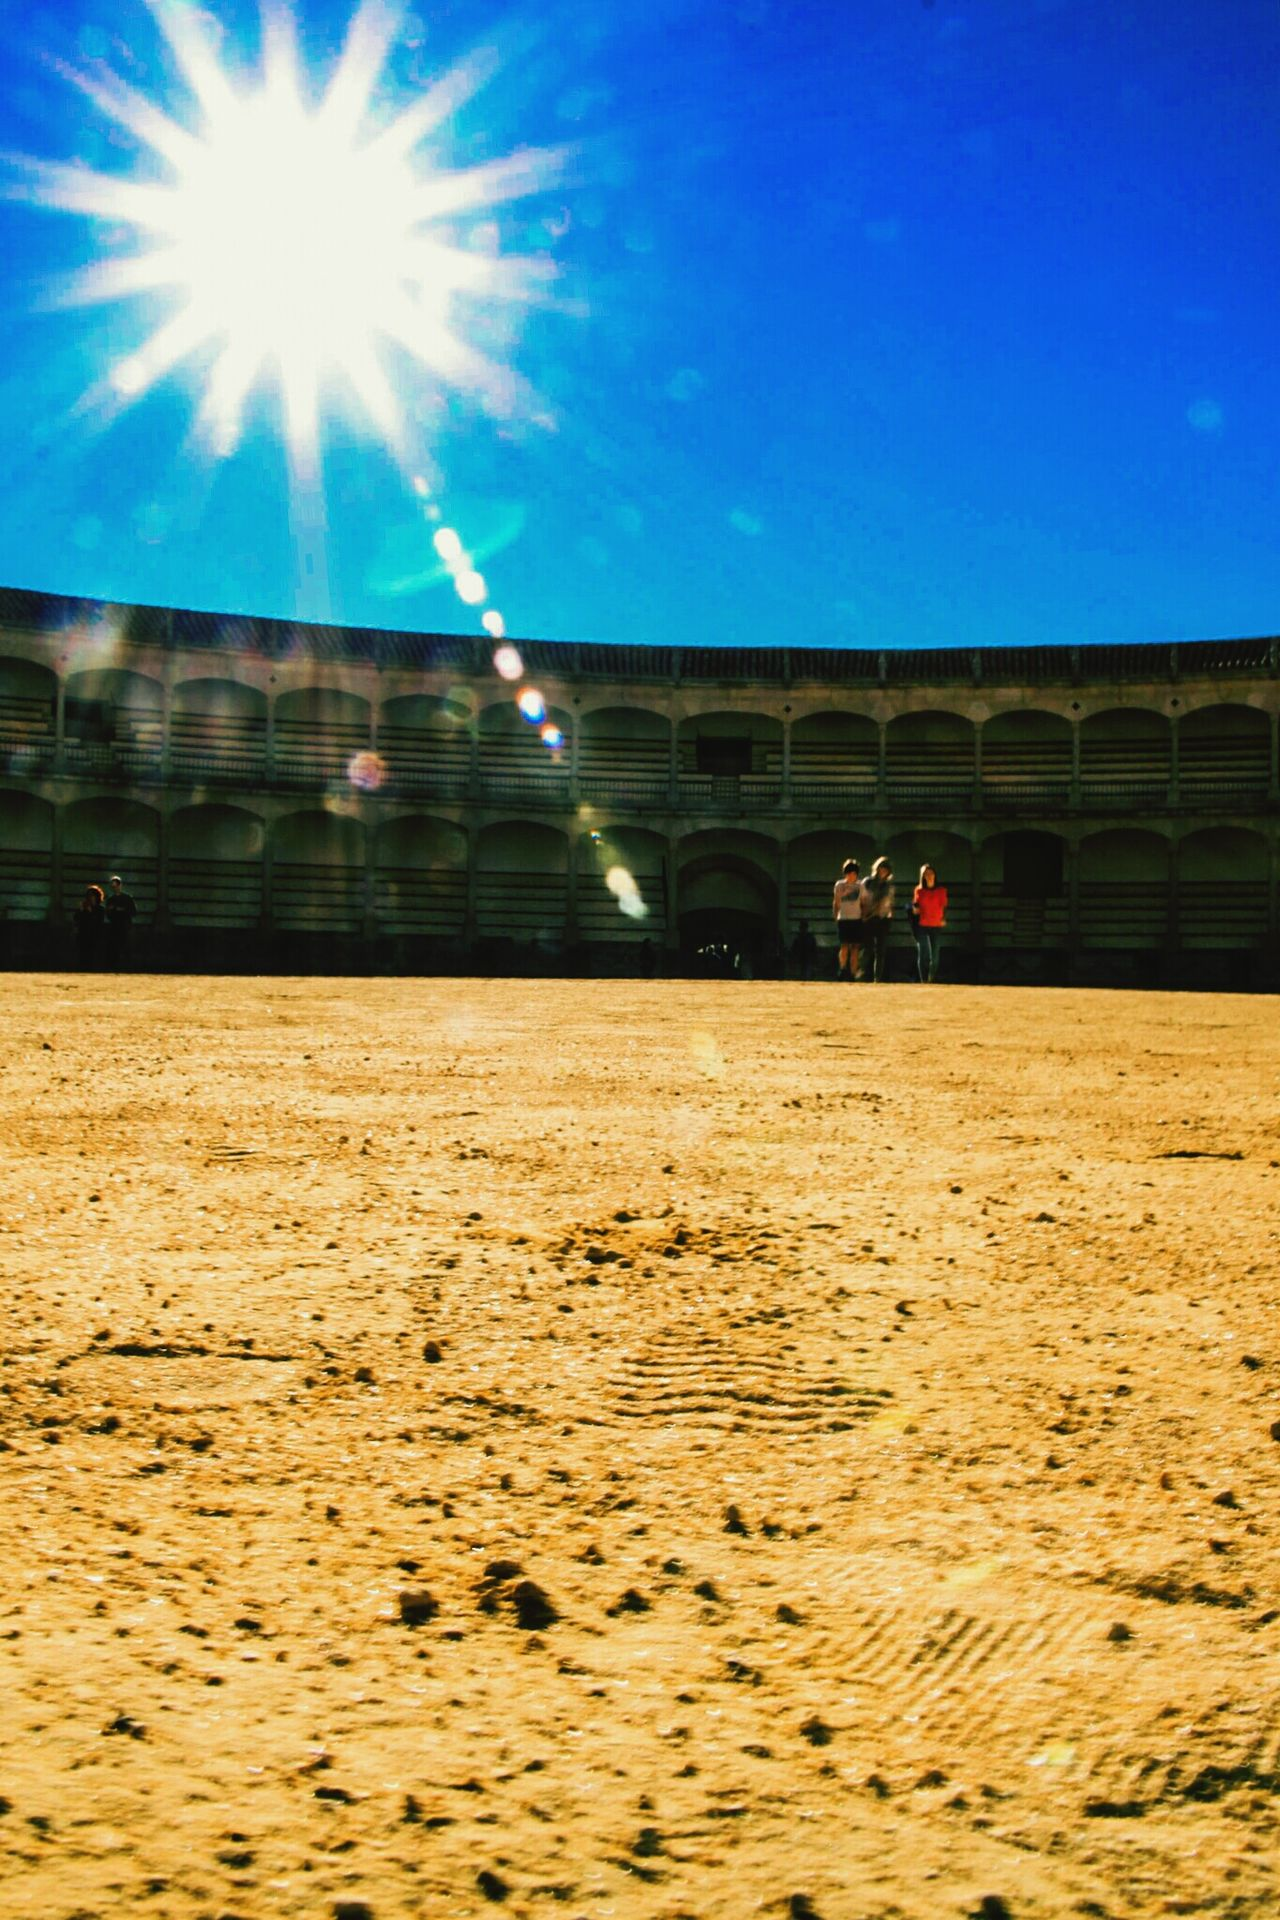 Sunlight Sky Outdoors Sunbeam Architecture Building Exterior Sun Men People Stadium Plaza De Toros Plazadetoros Ronda Ronda, Malaga Ronda Spain EyeEm Gallery Check This Out Low Angle View Arena Footprints Star Focus On Foreground